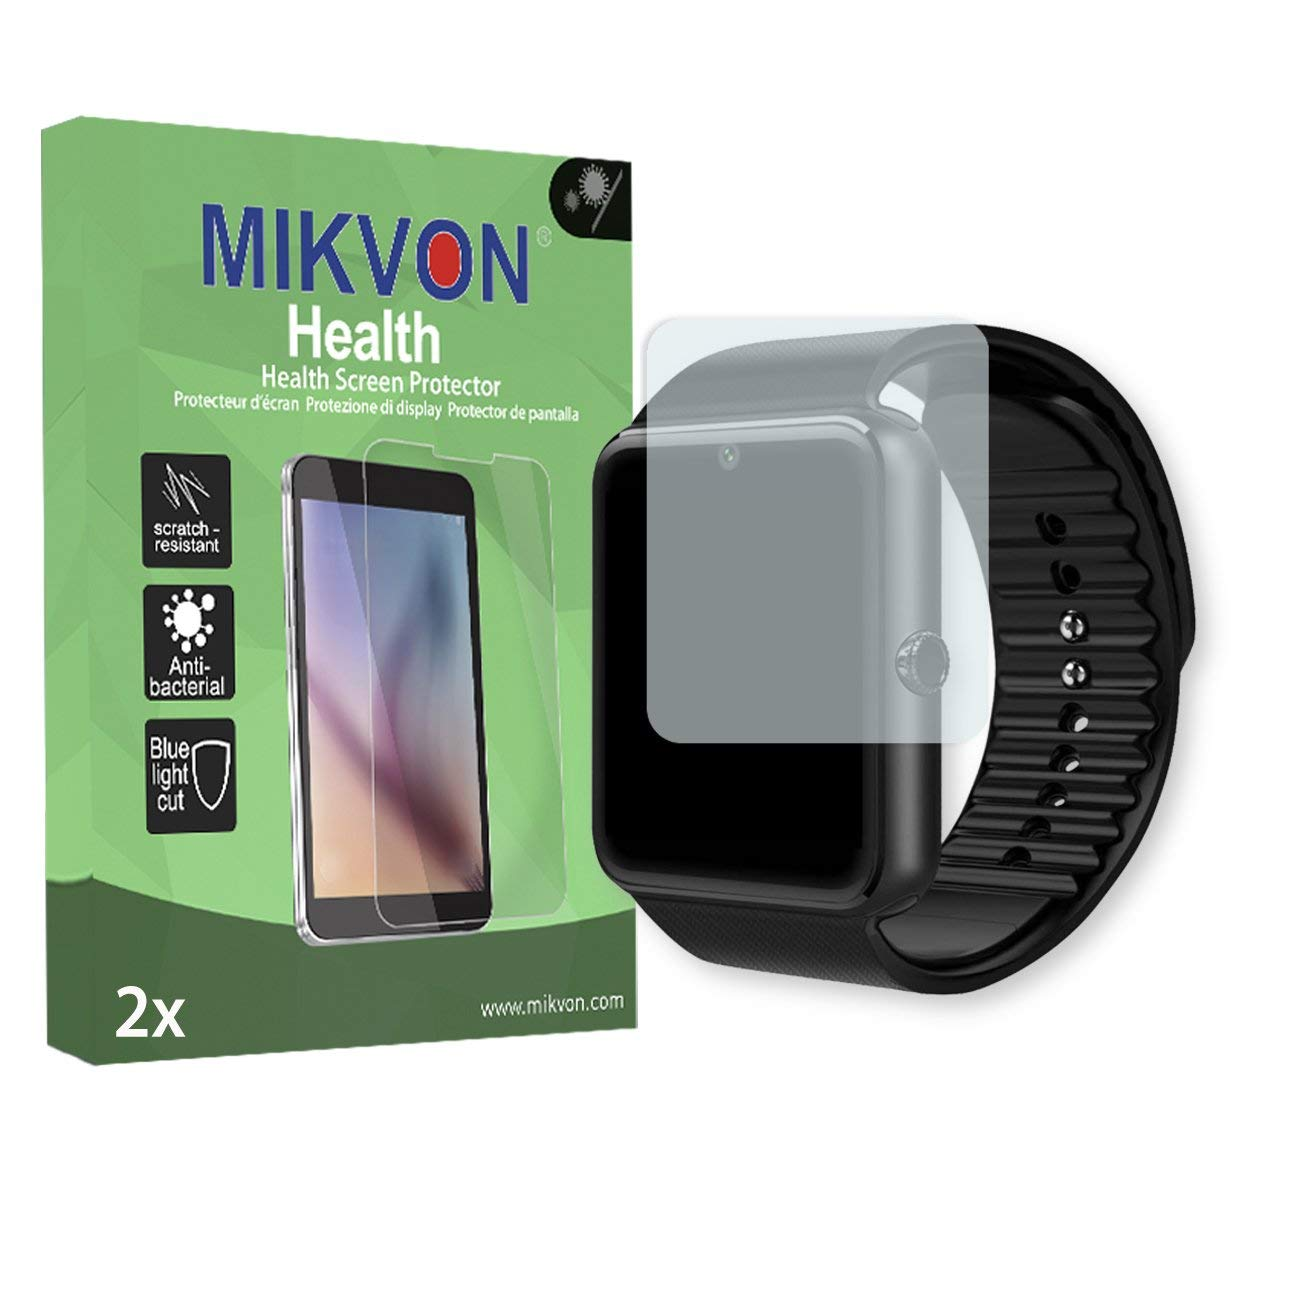 "2x Mikvon Health Screen Protector for LaTEC 1.54"" Bluetooth Smart Watch Antibacterial BlueLightCut Foil (intentionally smaller than the display due to its curved surface)"